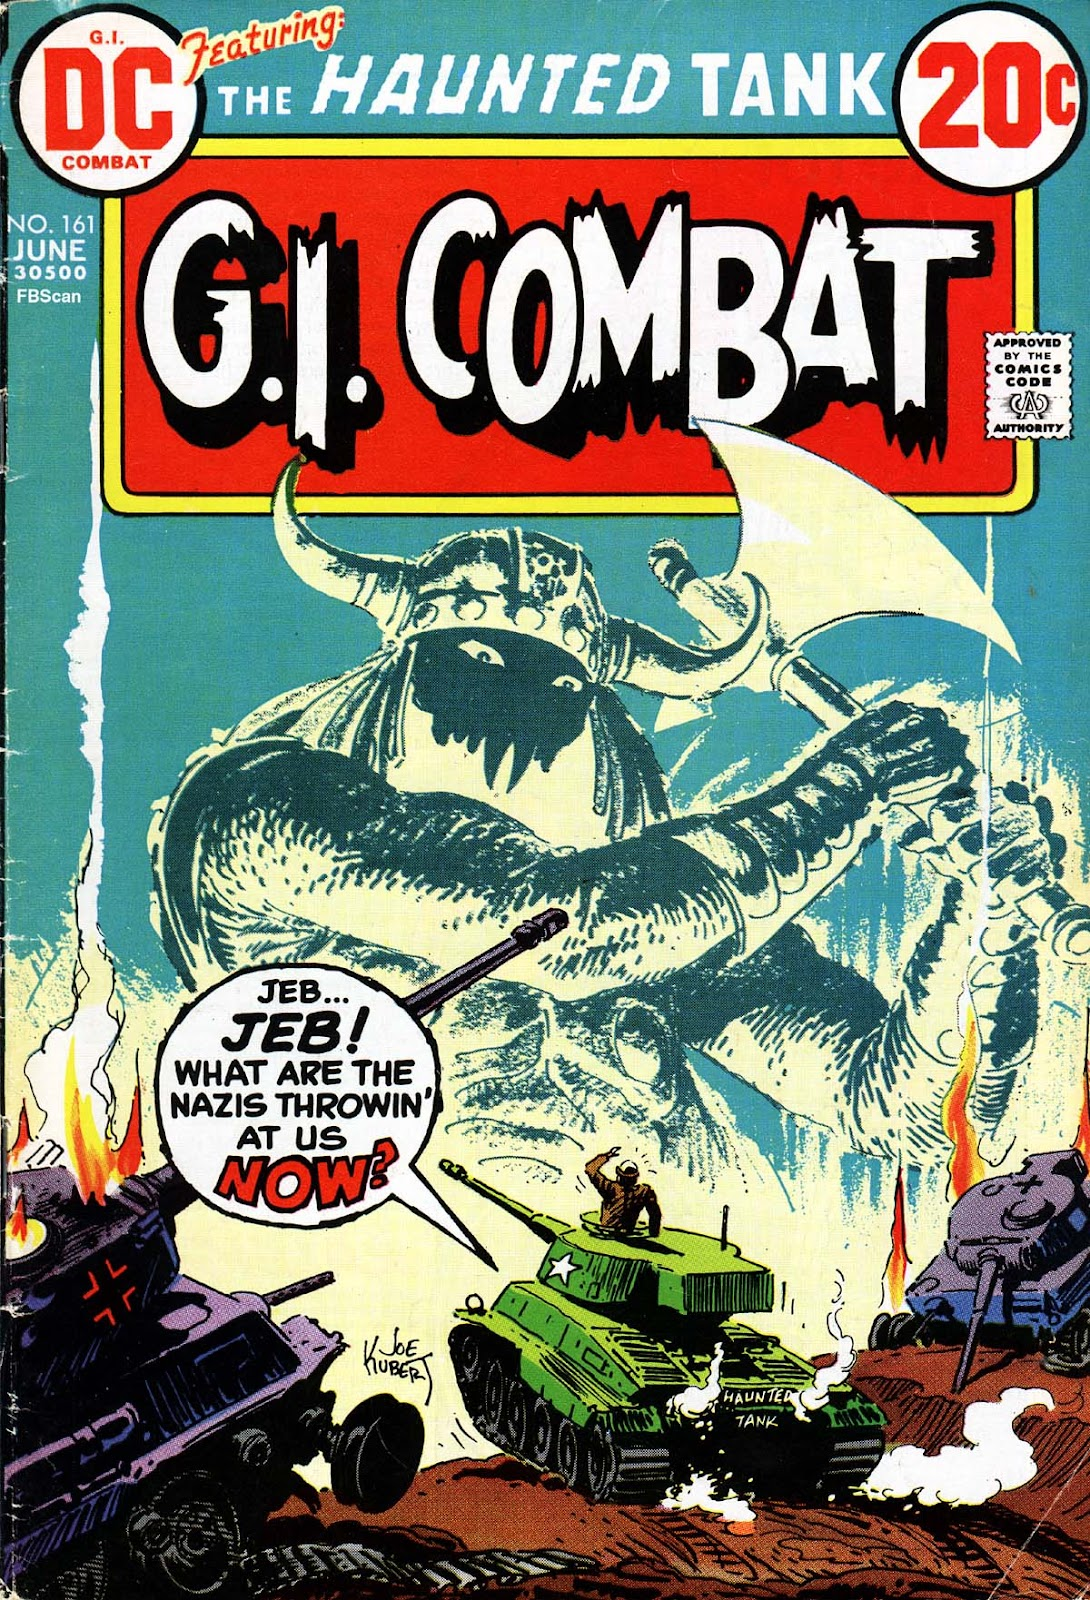 G.I. Combat (1952) issue 161 - Page 1